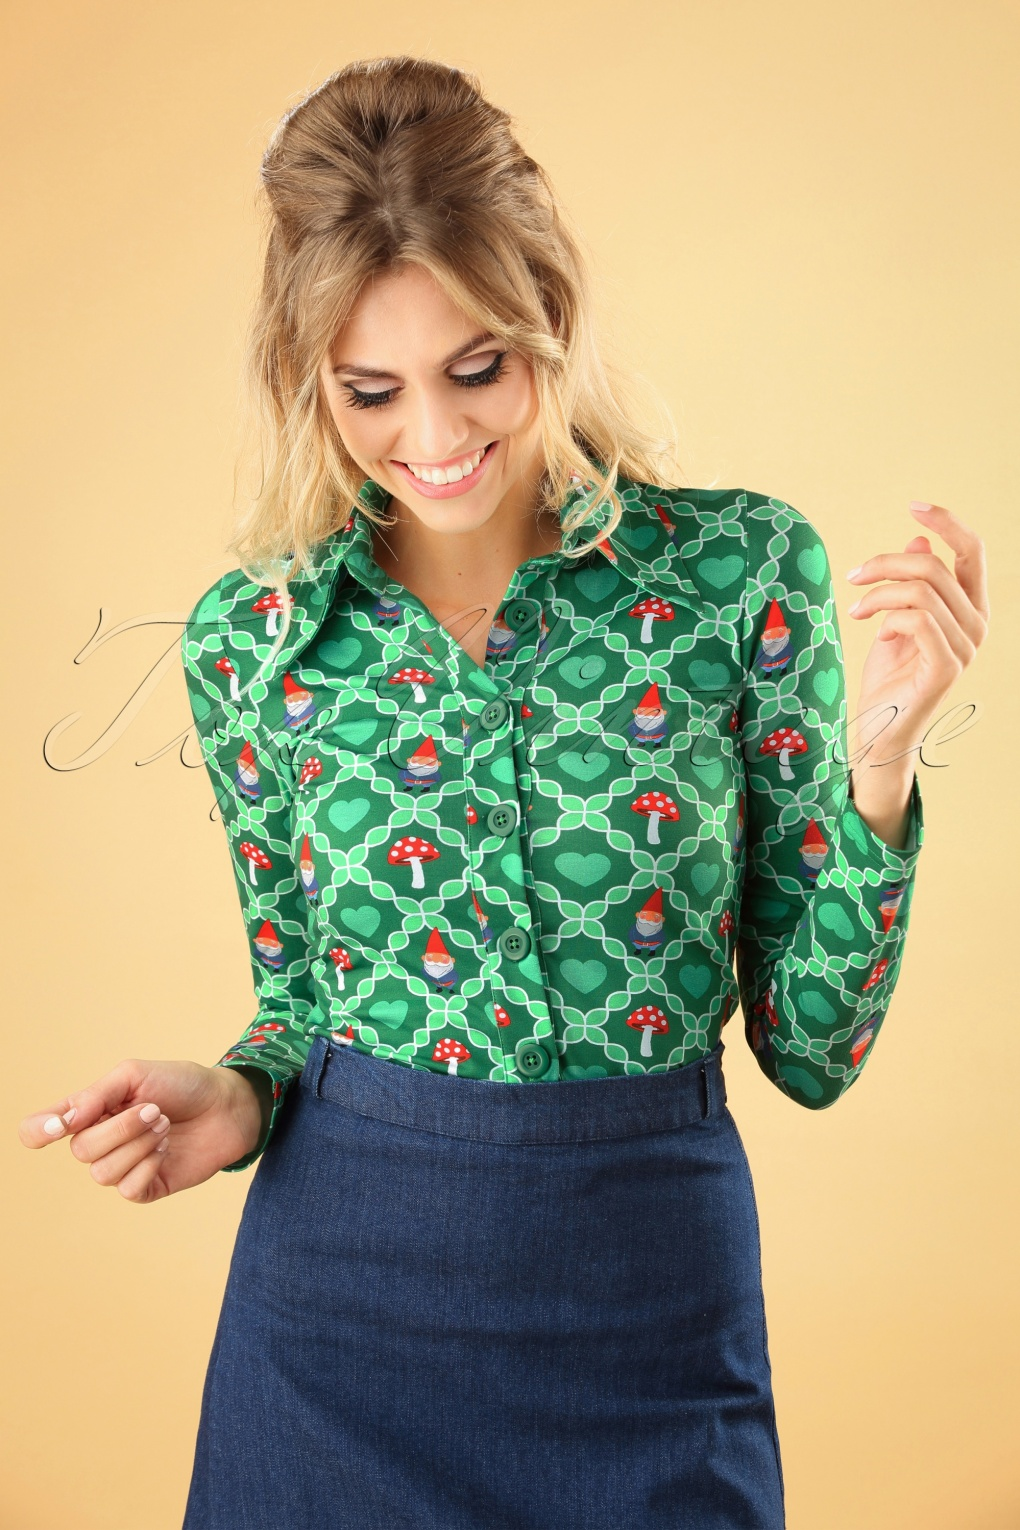 60s Shirts, T-shirt, Blouses | 70s Shirts, Tops, Vests 60s Gnome Love Blouse in Green £52.54 AT vintagedancer.com